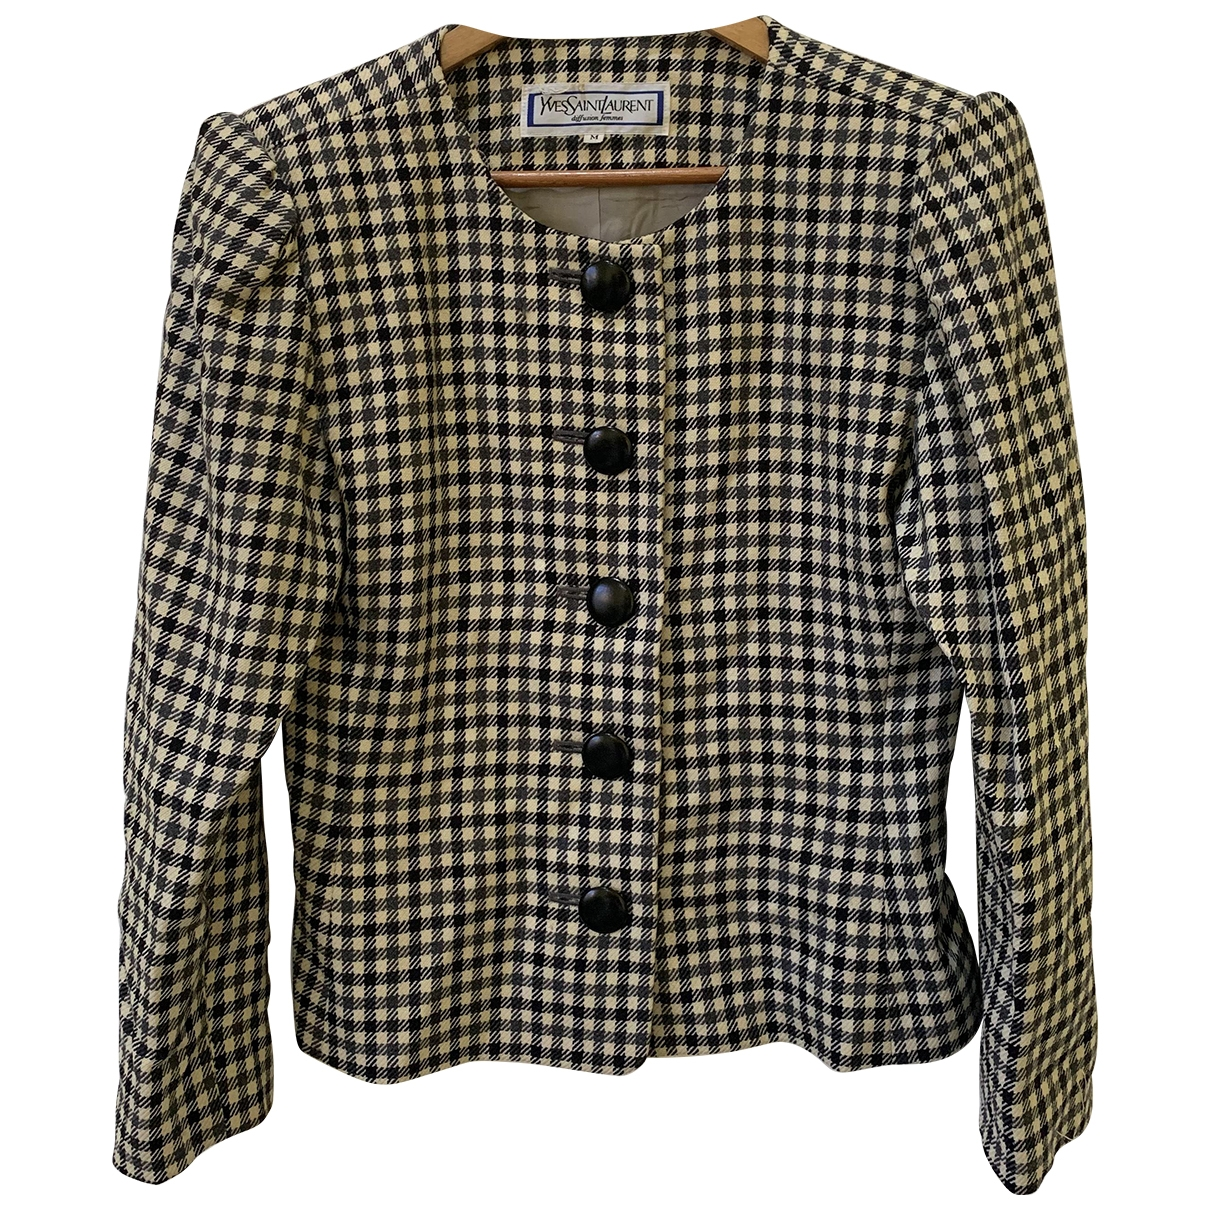 Yves Saint Laurent \N jacket for Women S International